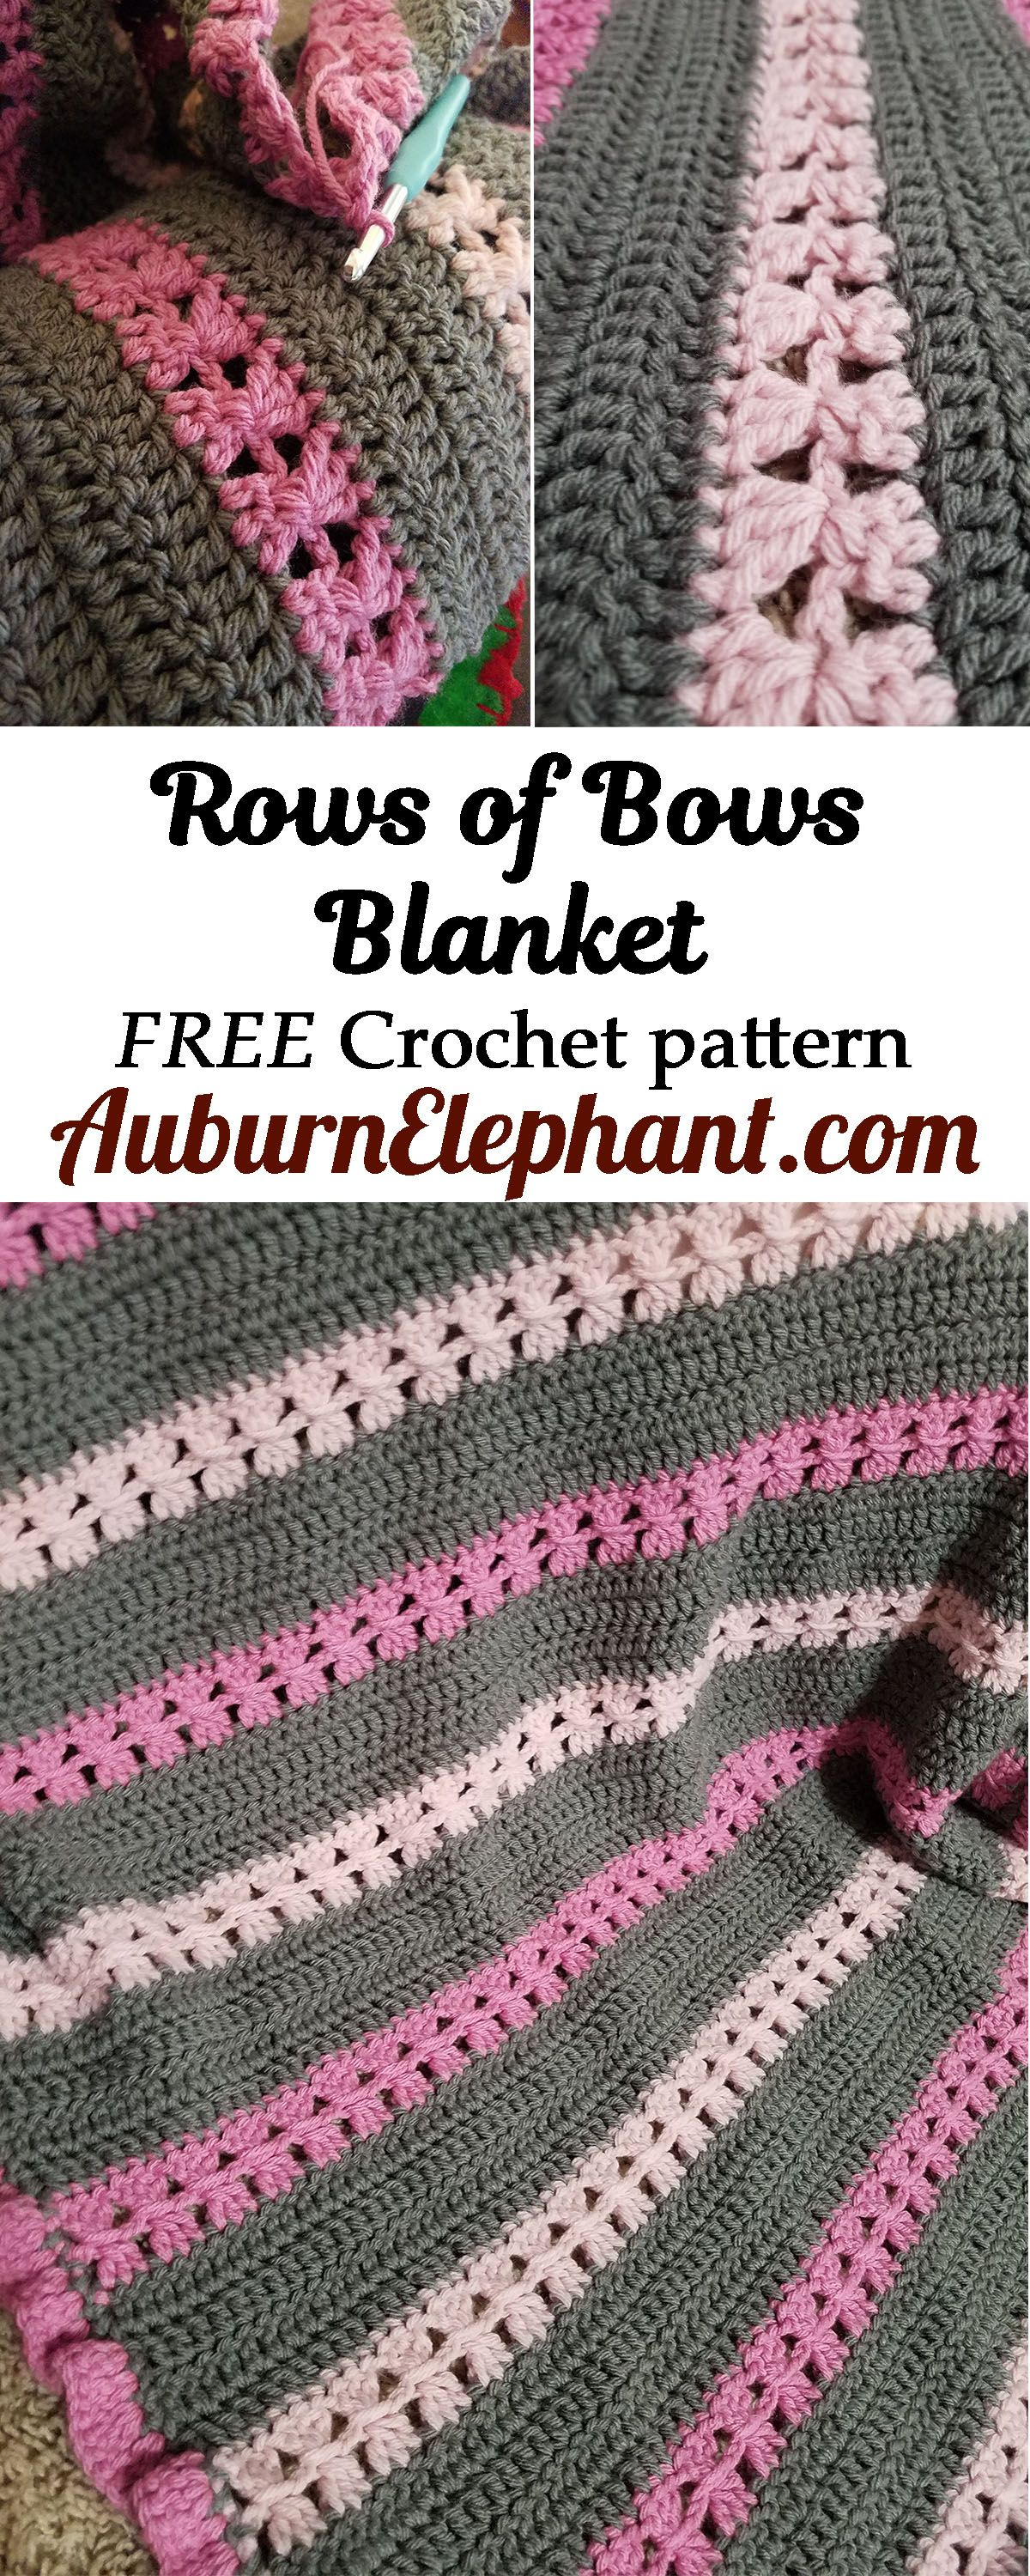 Get this FREE Crochet pattern for the Rows of Bows Blanket by Auburn